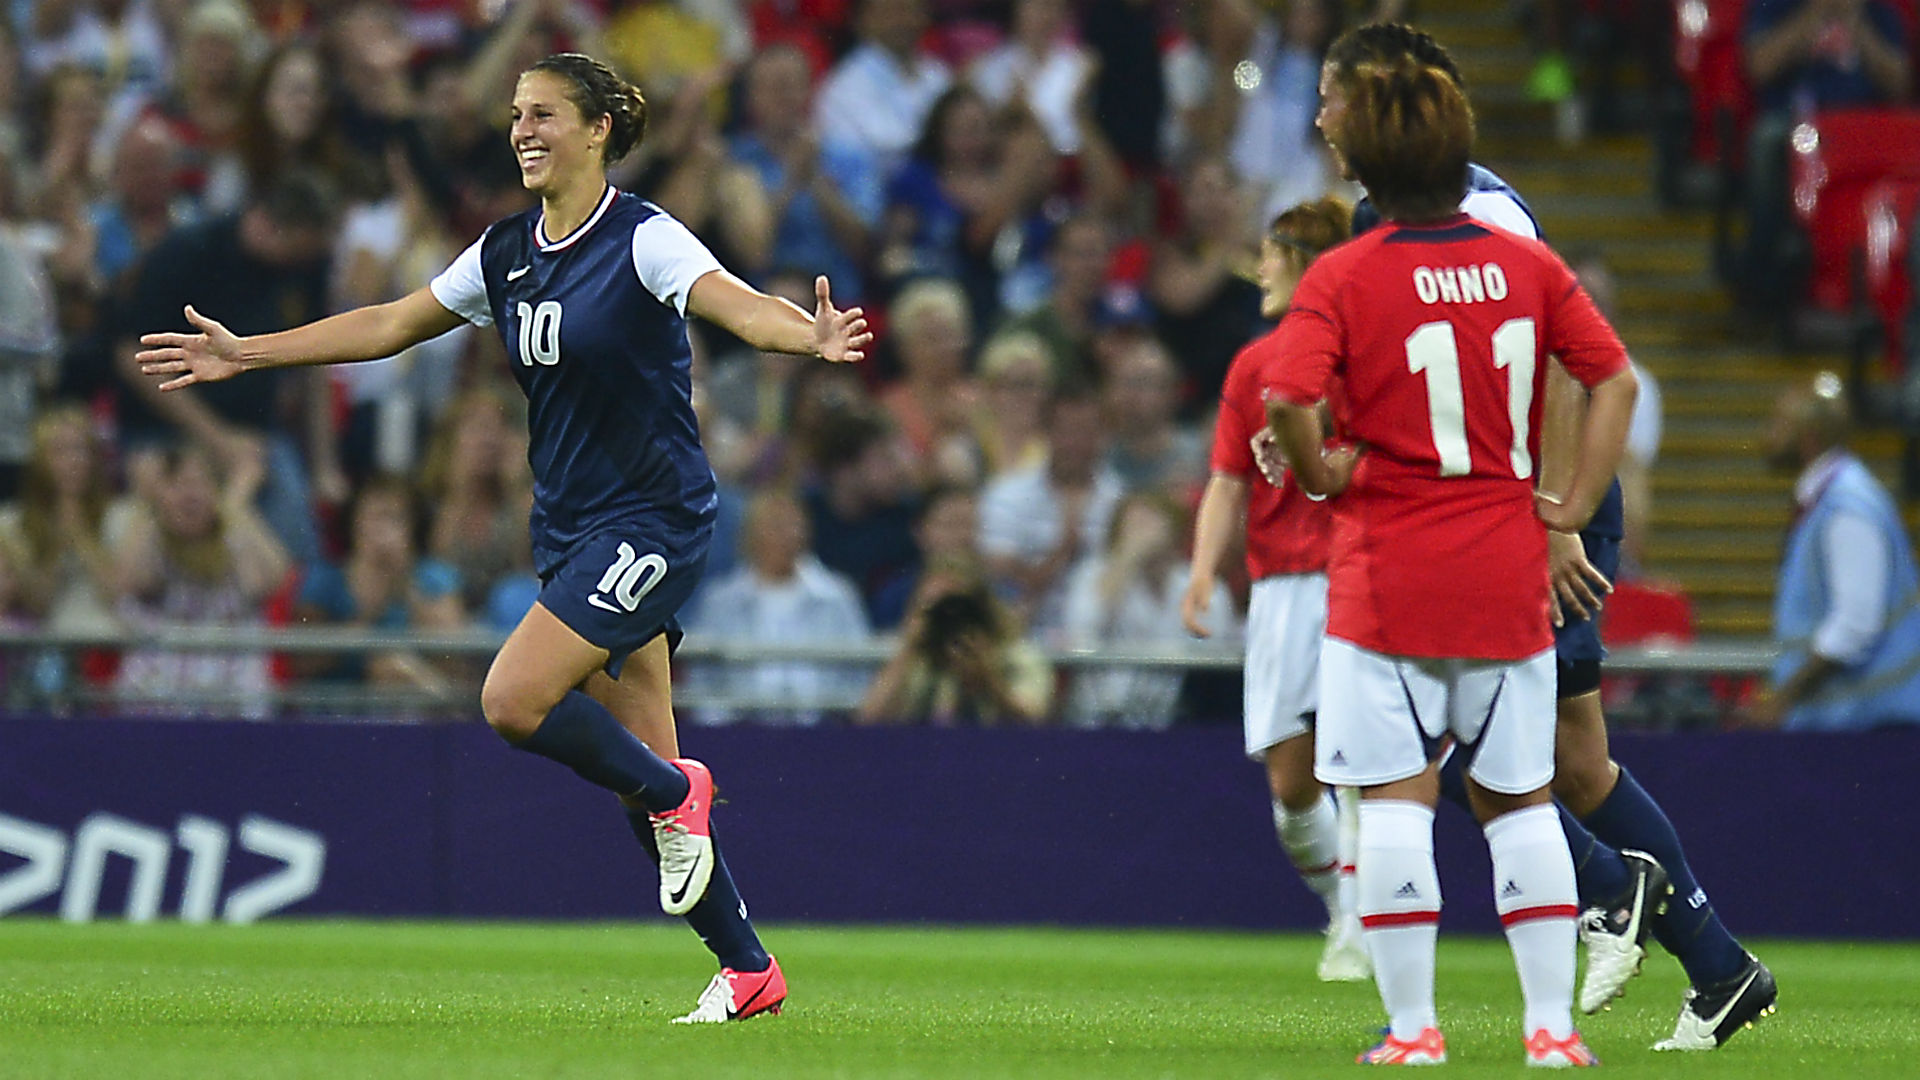 Women's World Cup Final, USA vs. Japan: Time, TV channel, online streaming and award watch